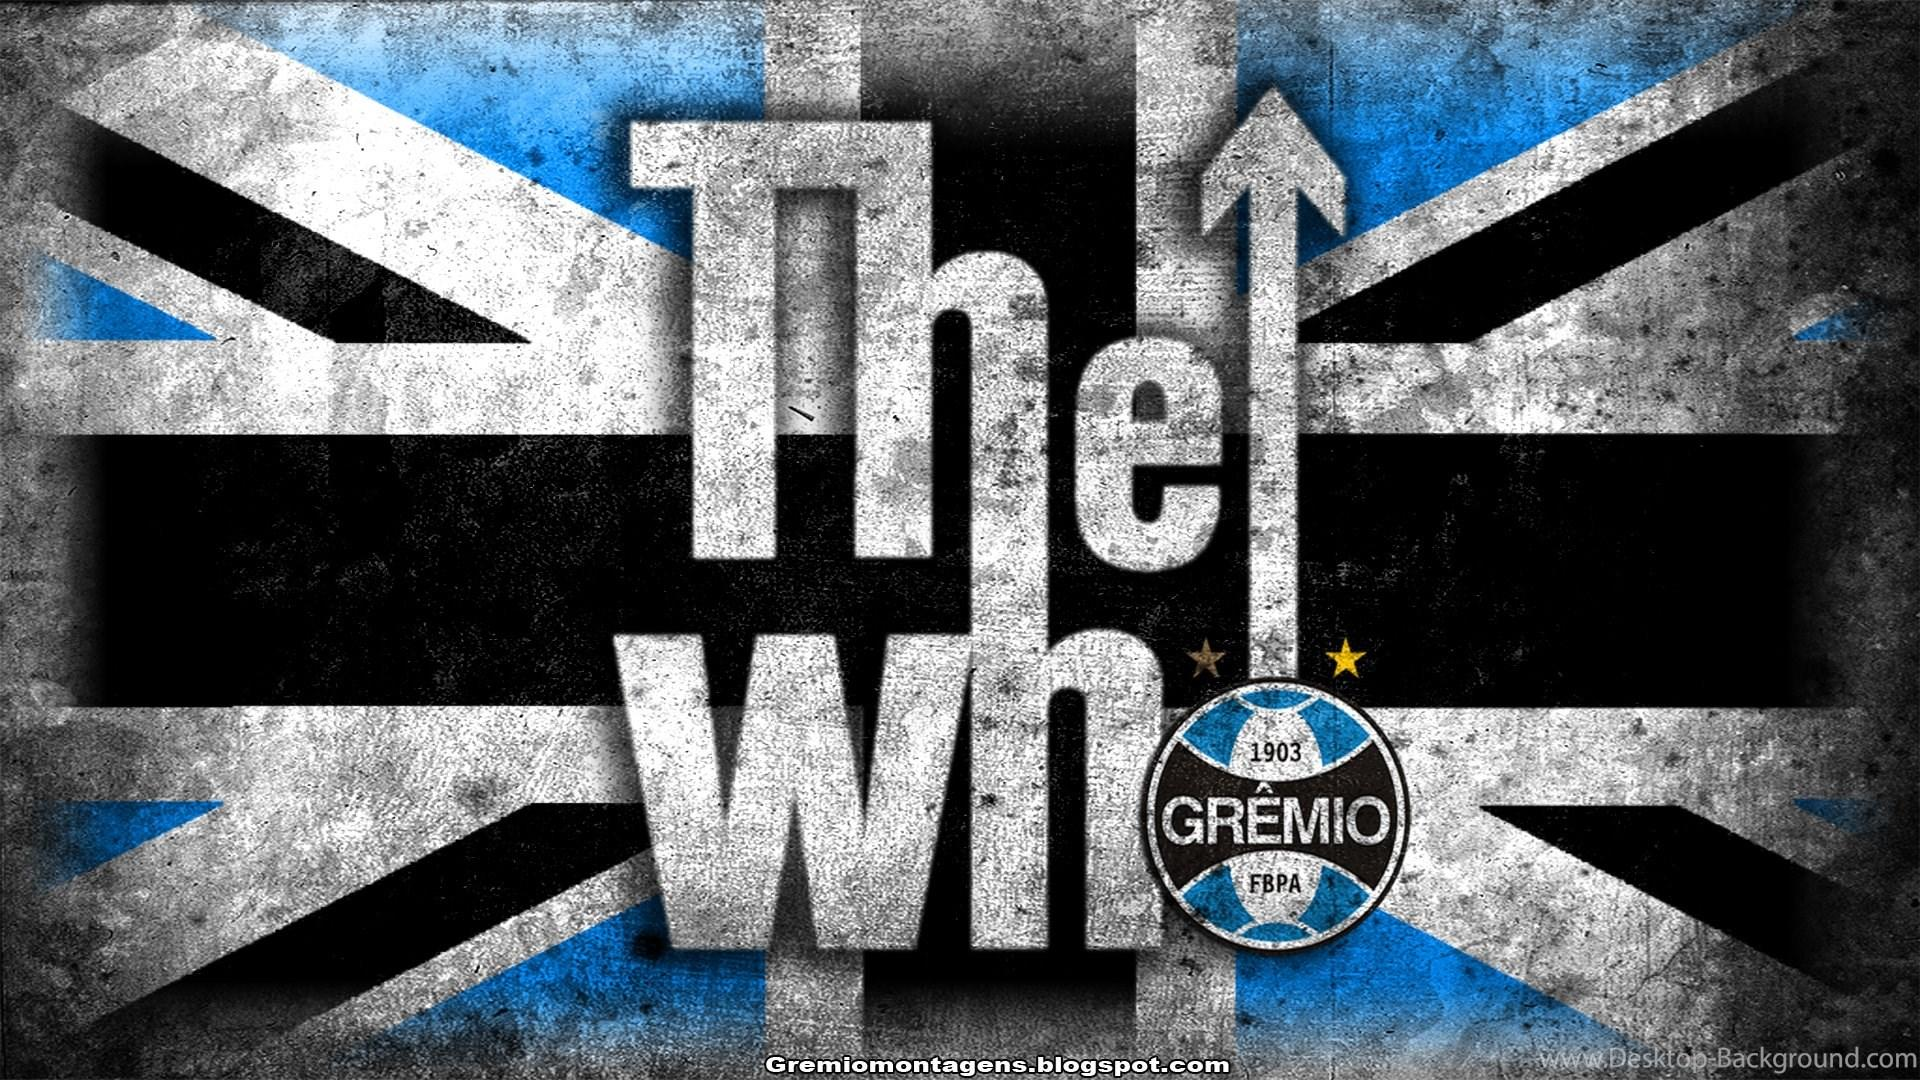 The Who, 1920x1080 HD Wallpapers And FREE Stock Photo Desktop Backgrounds